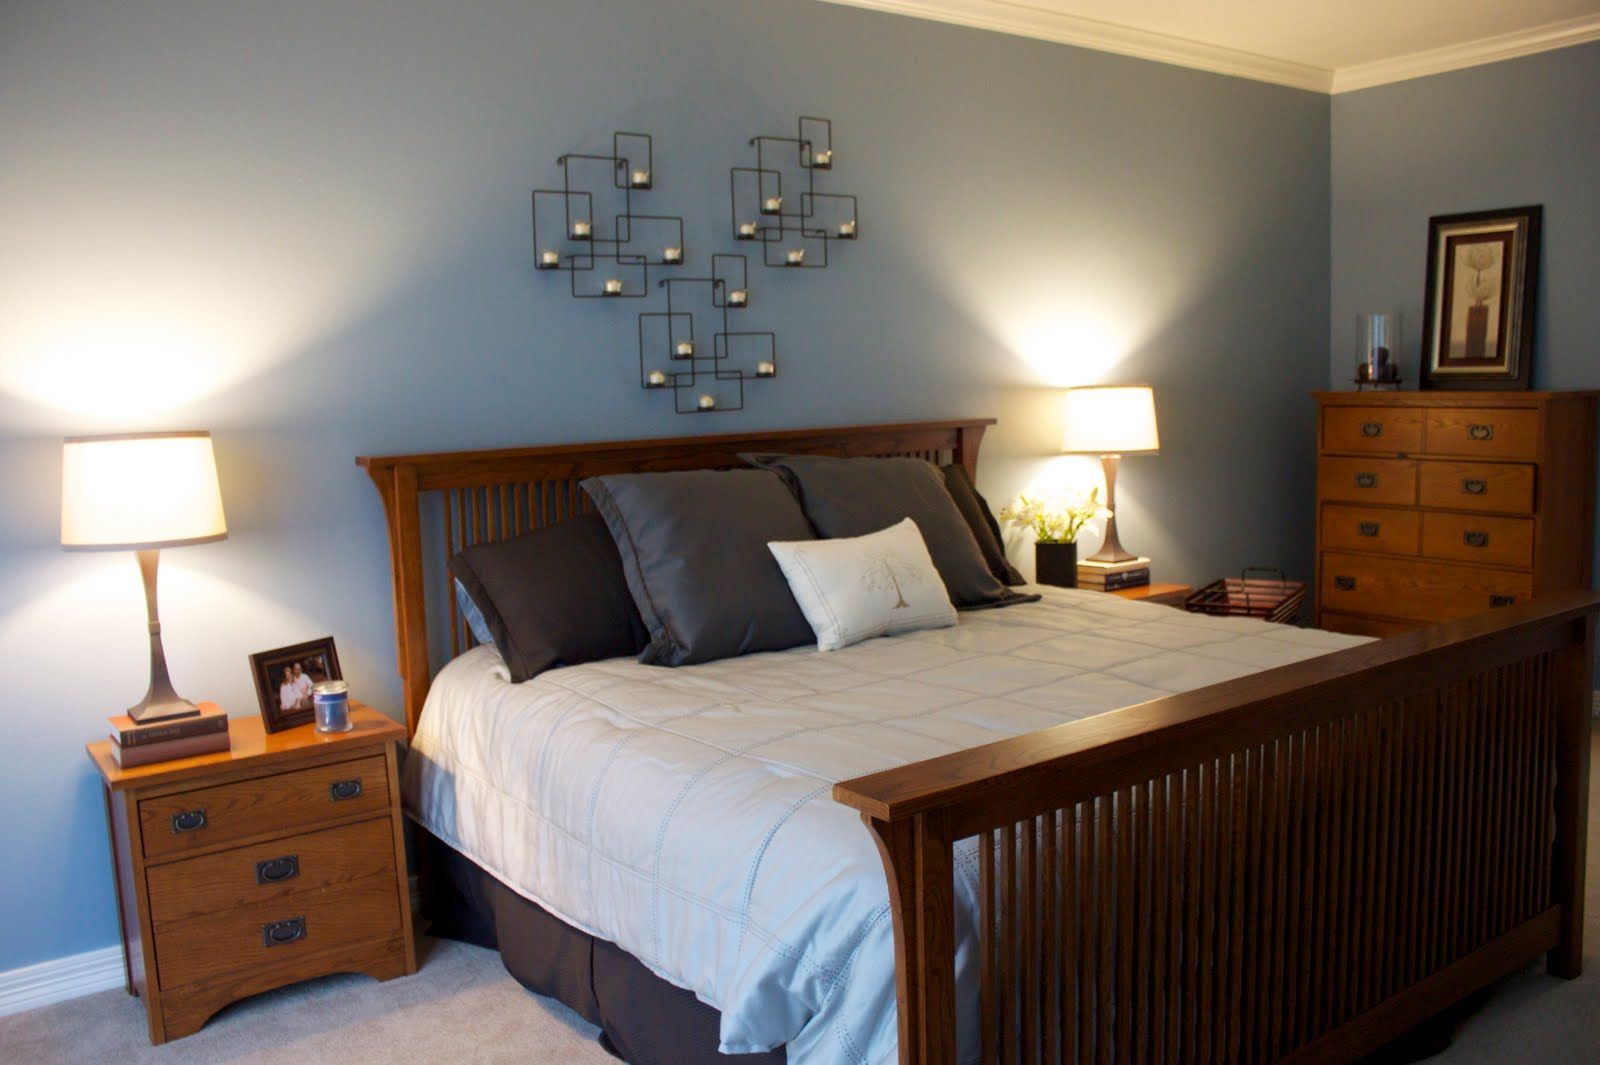 Master bedroom colors blue - Soft Gray Blue Master Bedroom Color Design Looks Simple Yet Peaceful